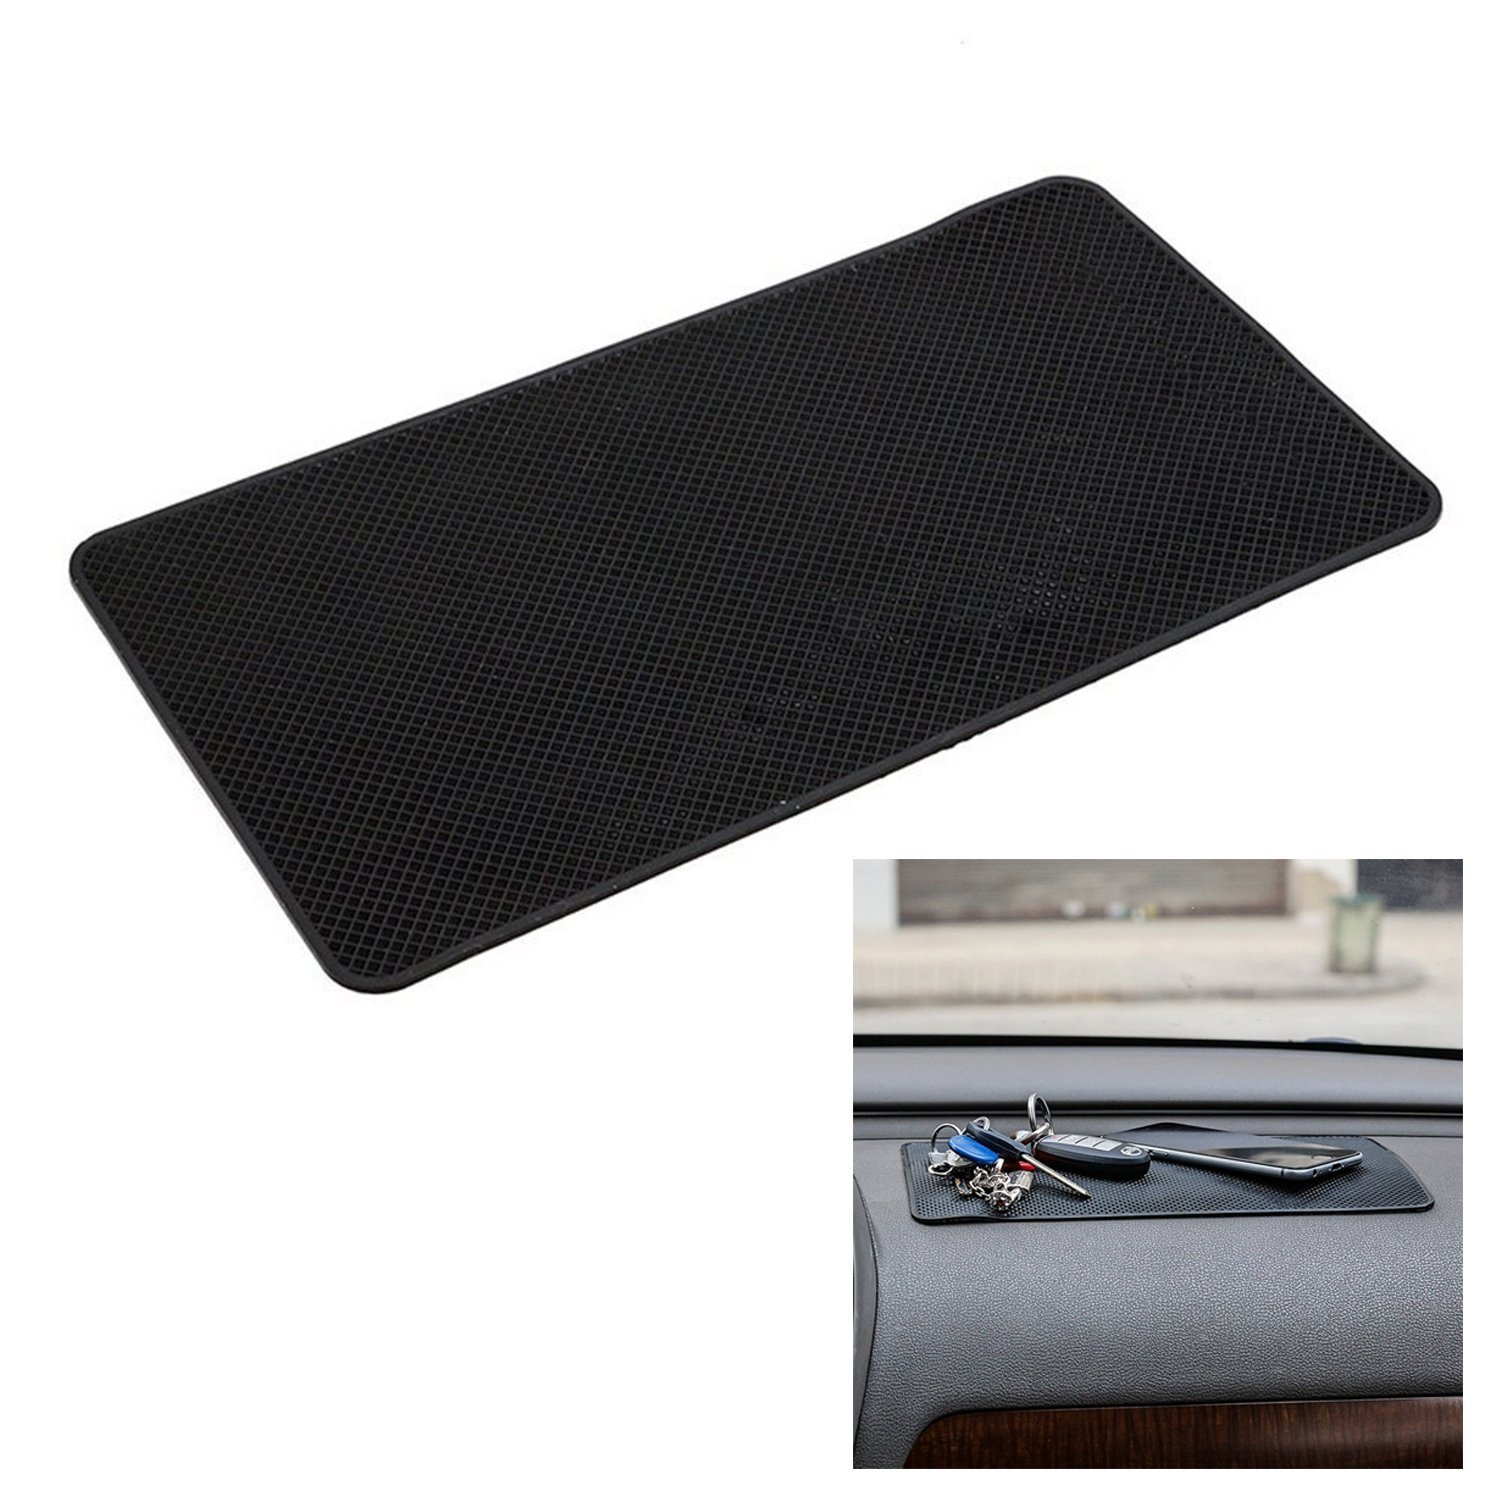 FGF-EU Non-slip Silicone Car Dashboard Mat Sticky Pad Adhesive Mat for Cell Phone,Electronic Devices,GPS, Coins